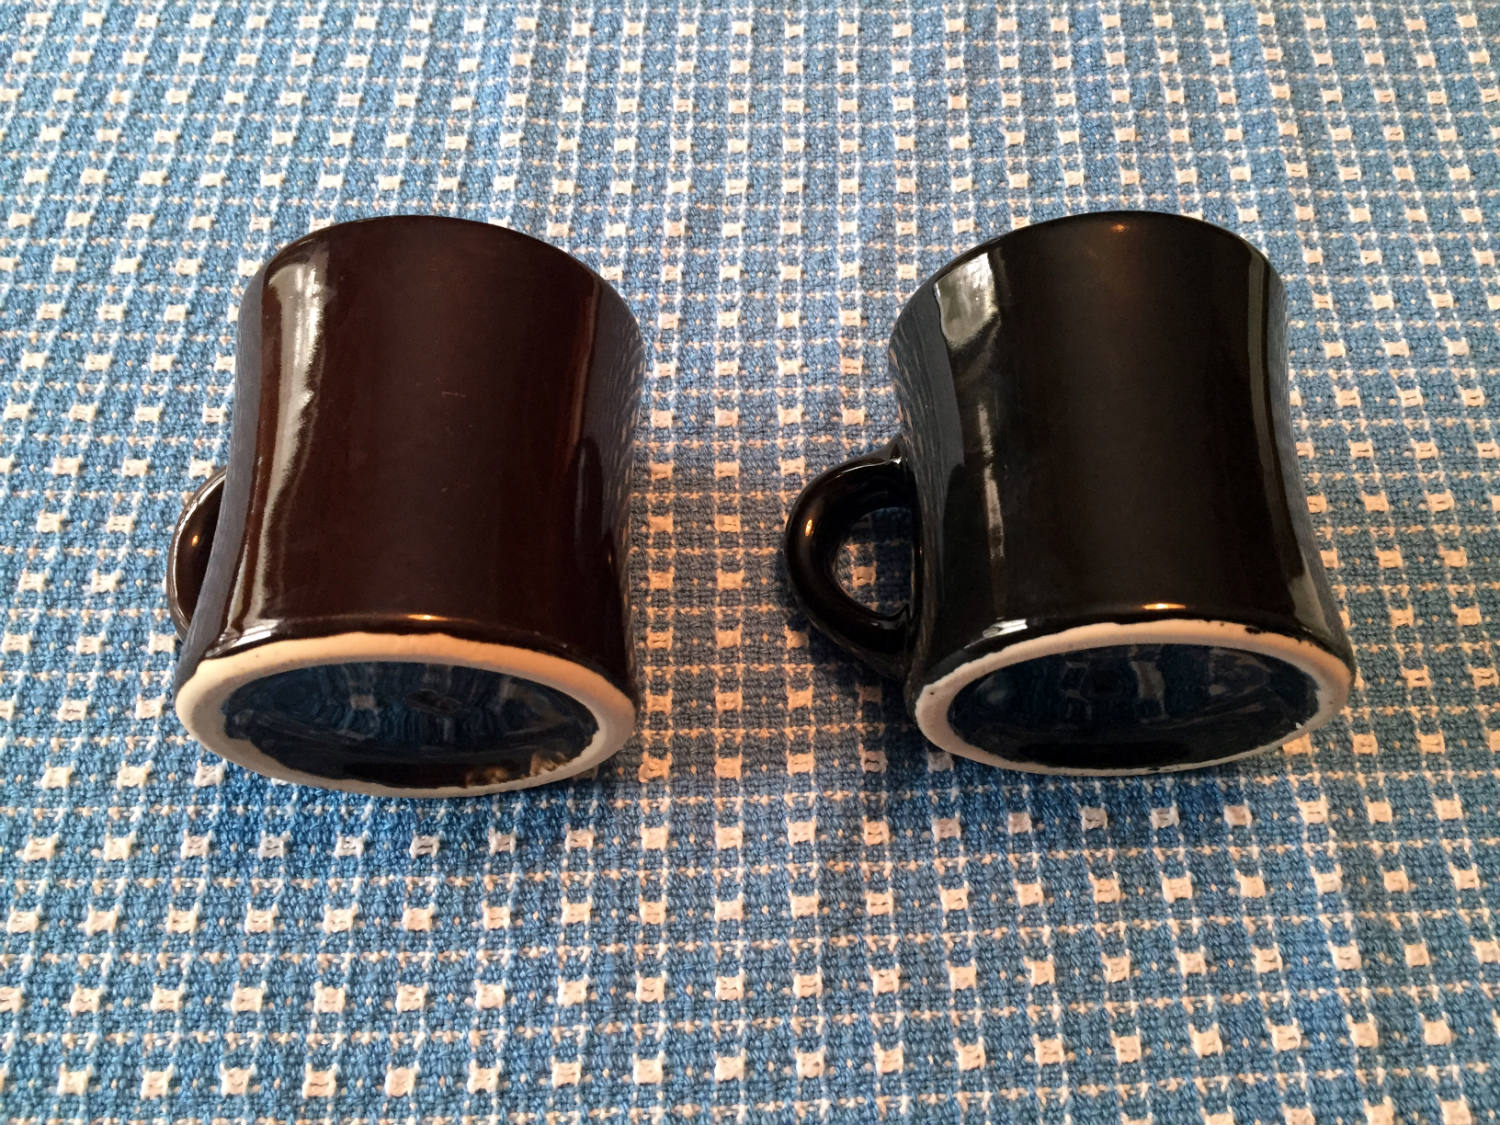 Brown and Black Victor Coffee Mugs